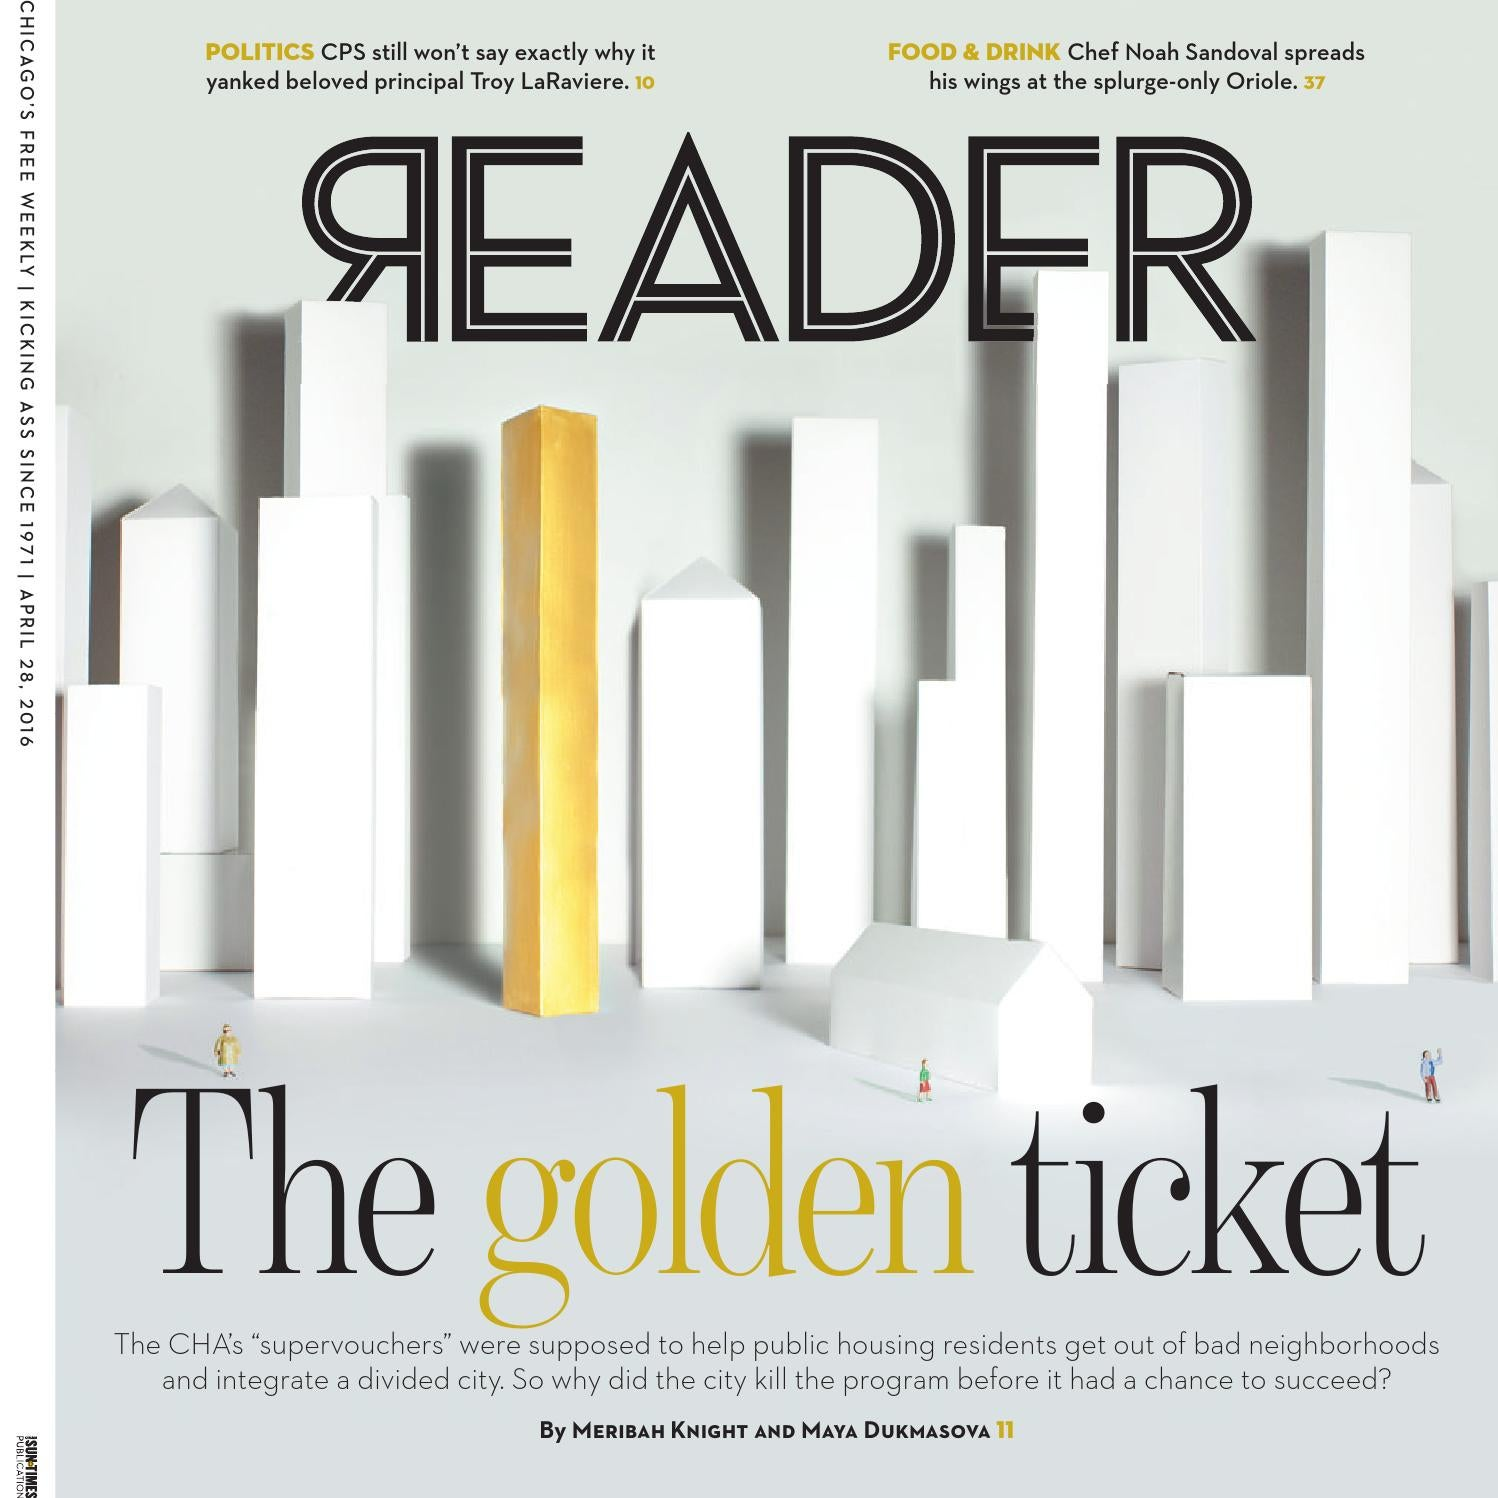 Chicago Reader Print Issue Of April 28 2016 Volume 45 Number  # Lorena Alinea Guide